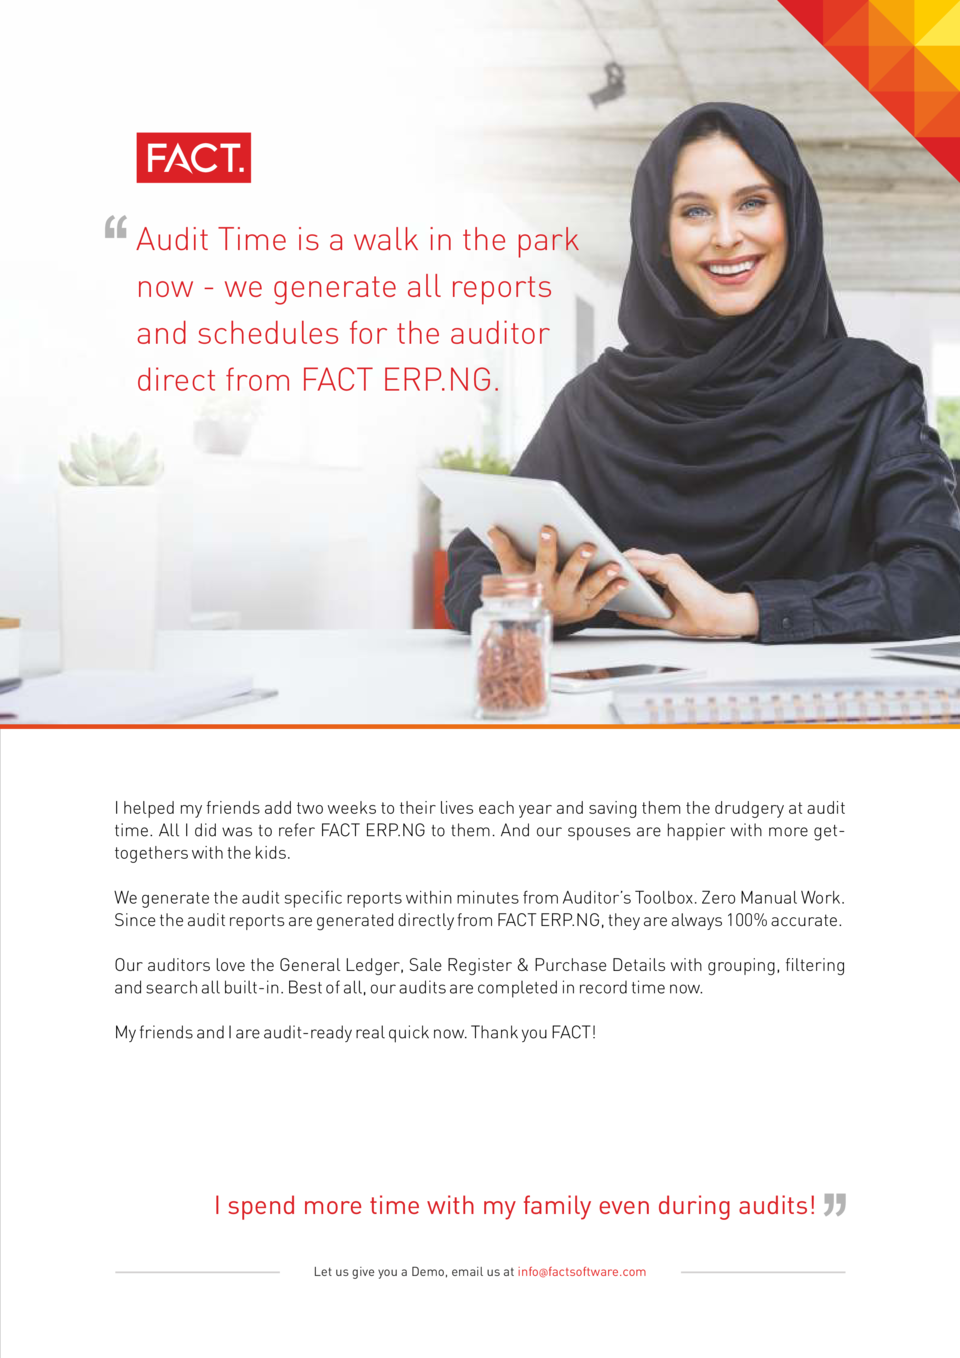 Audit Time is a walk in the park now - we generate all reports and schedules for the auditor direct from FACT ERP.NG.  I h...